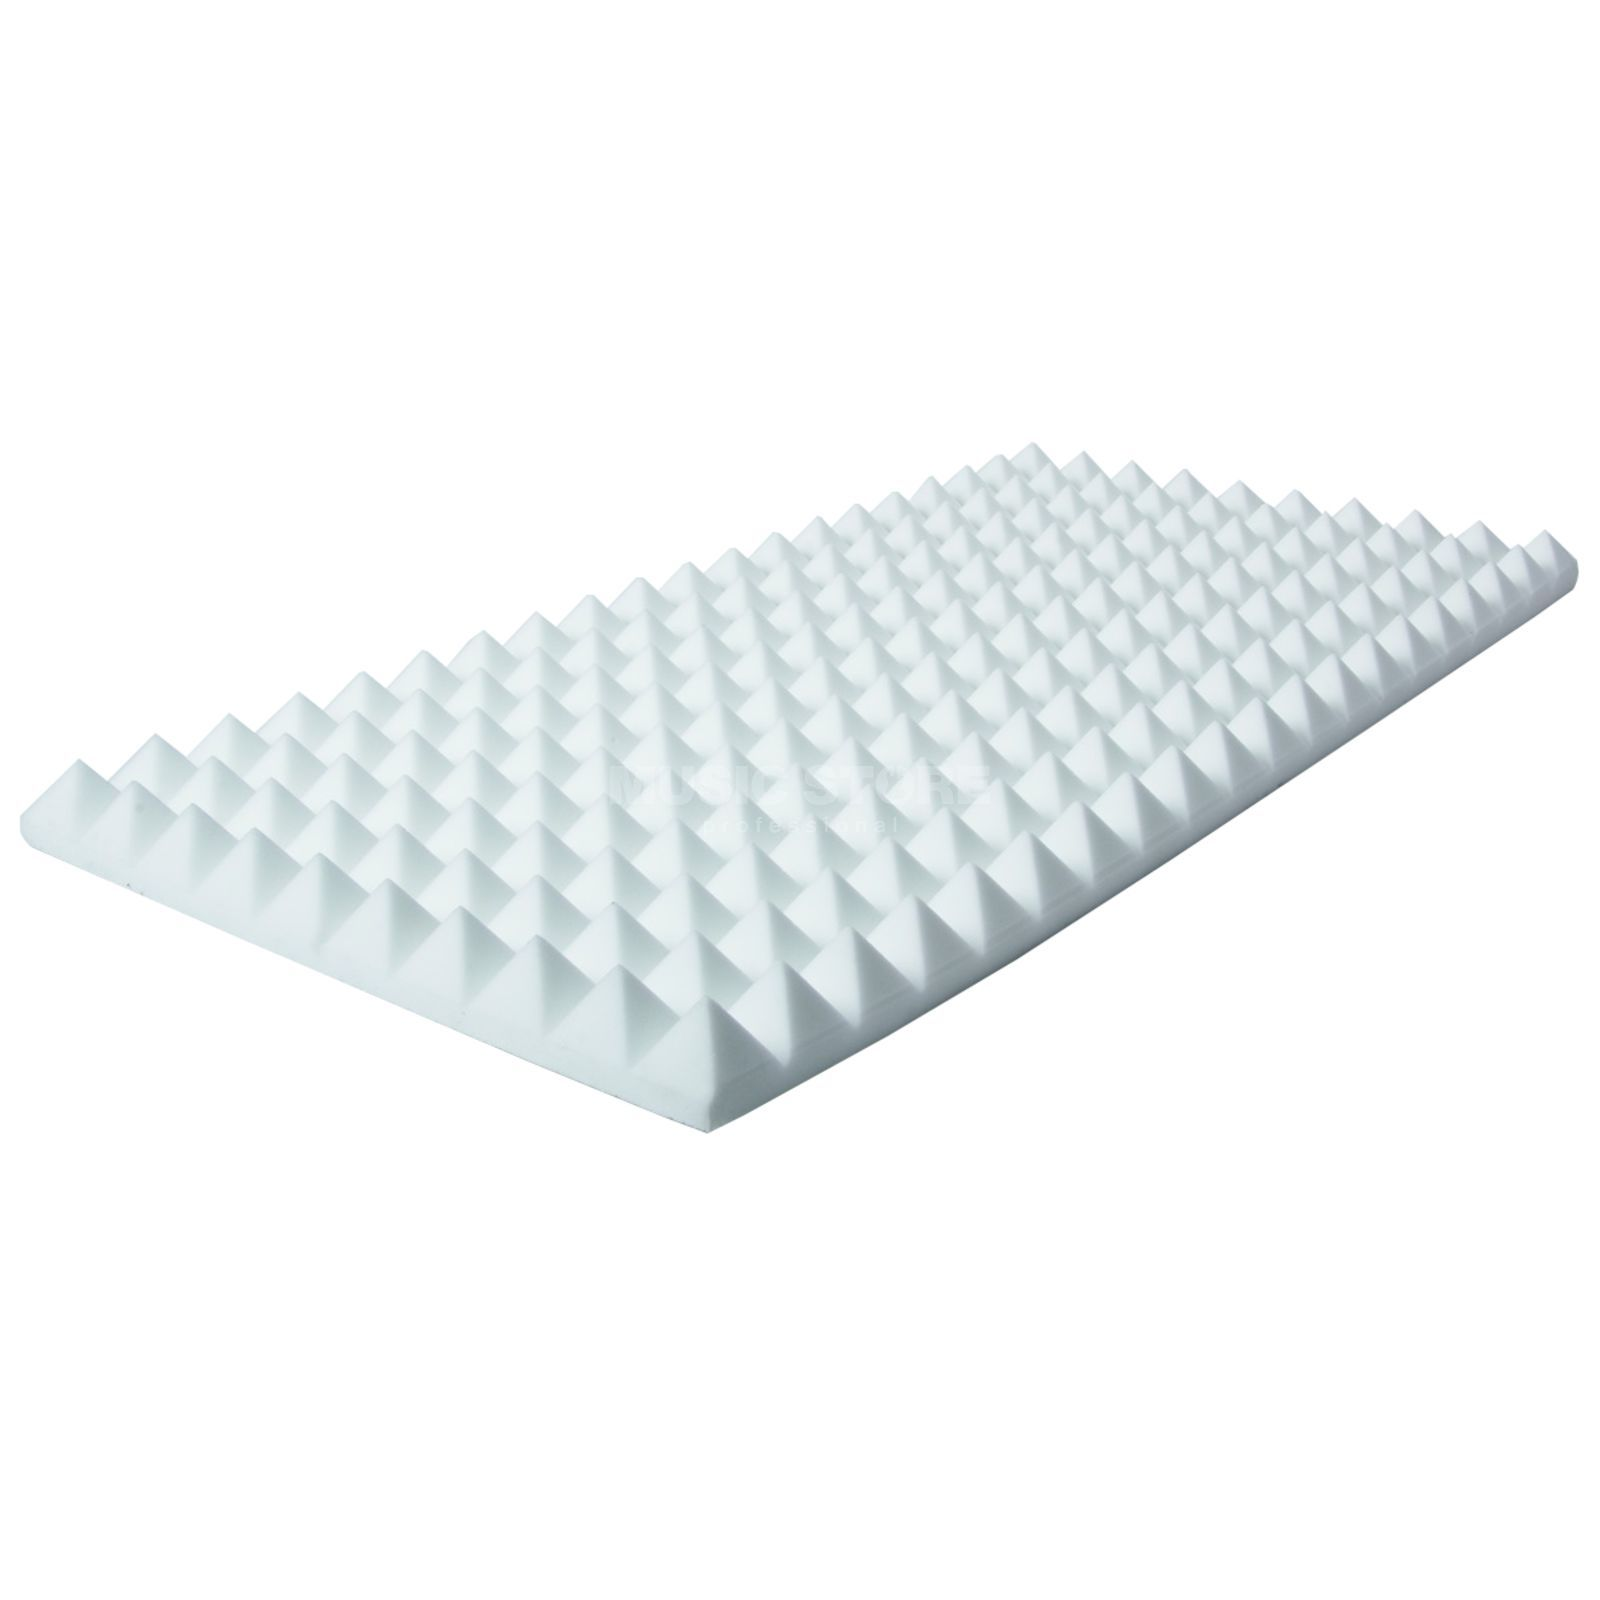 MUSIC STORE Pyramis Acoustic Foam 50 white 100x50cm,5cm,Basotect,adhesive Produktbillede